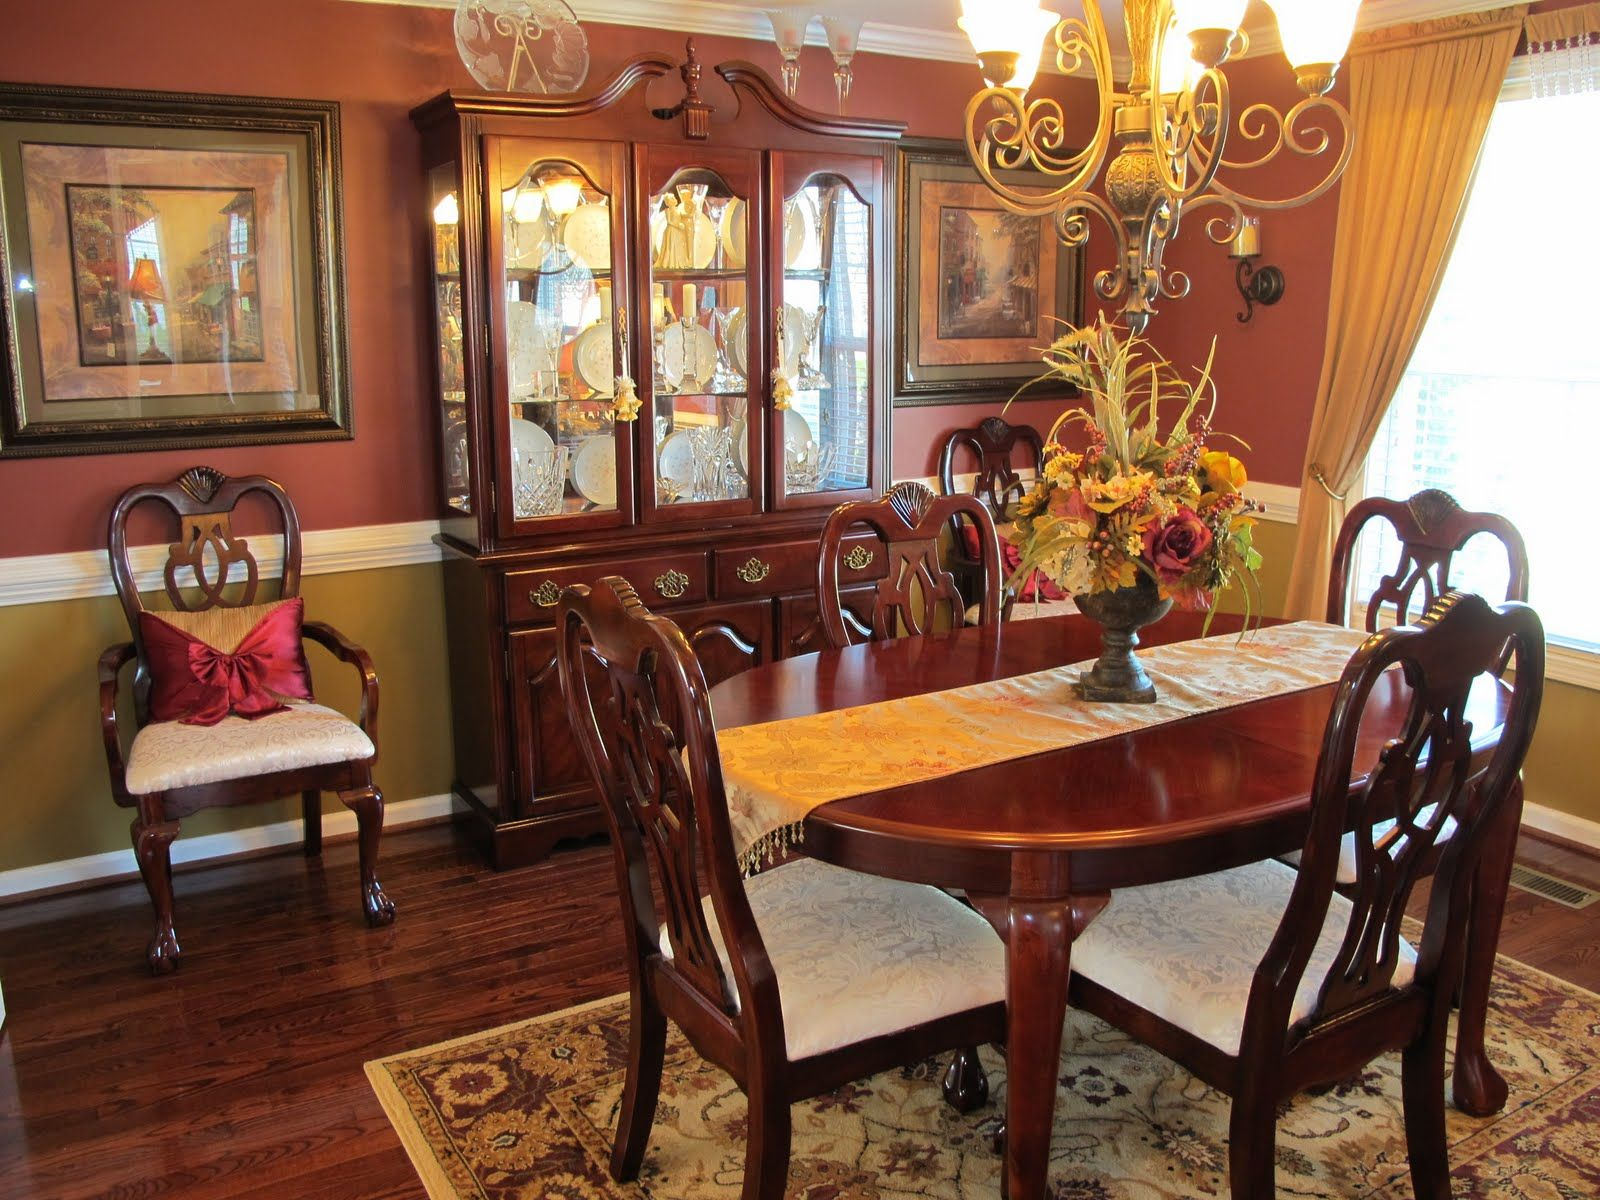 See more ideas about victorian decor, queen anne, victorian. The tuscan style cafe' prints from Kirklands.   Formal